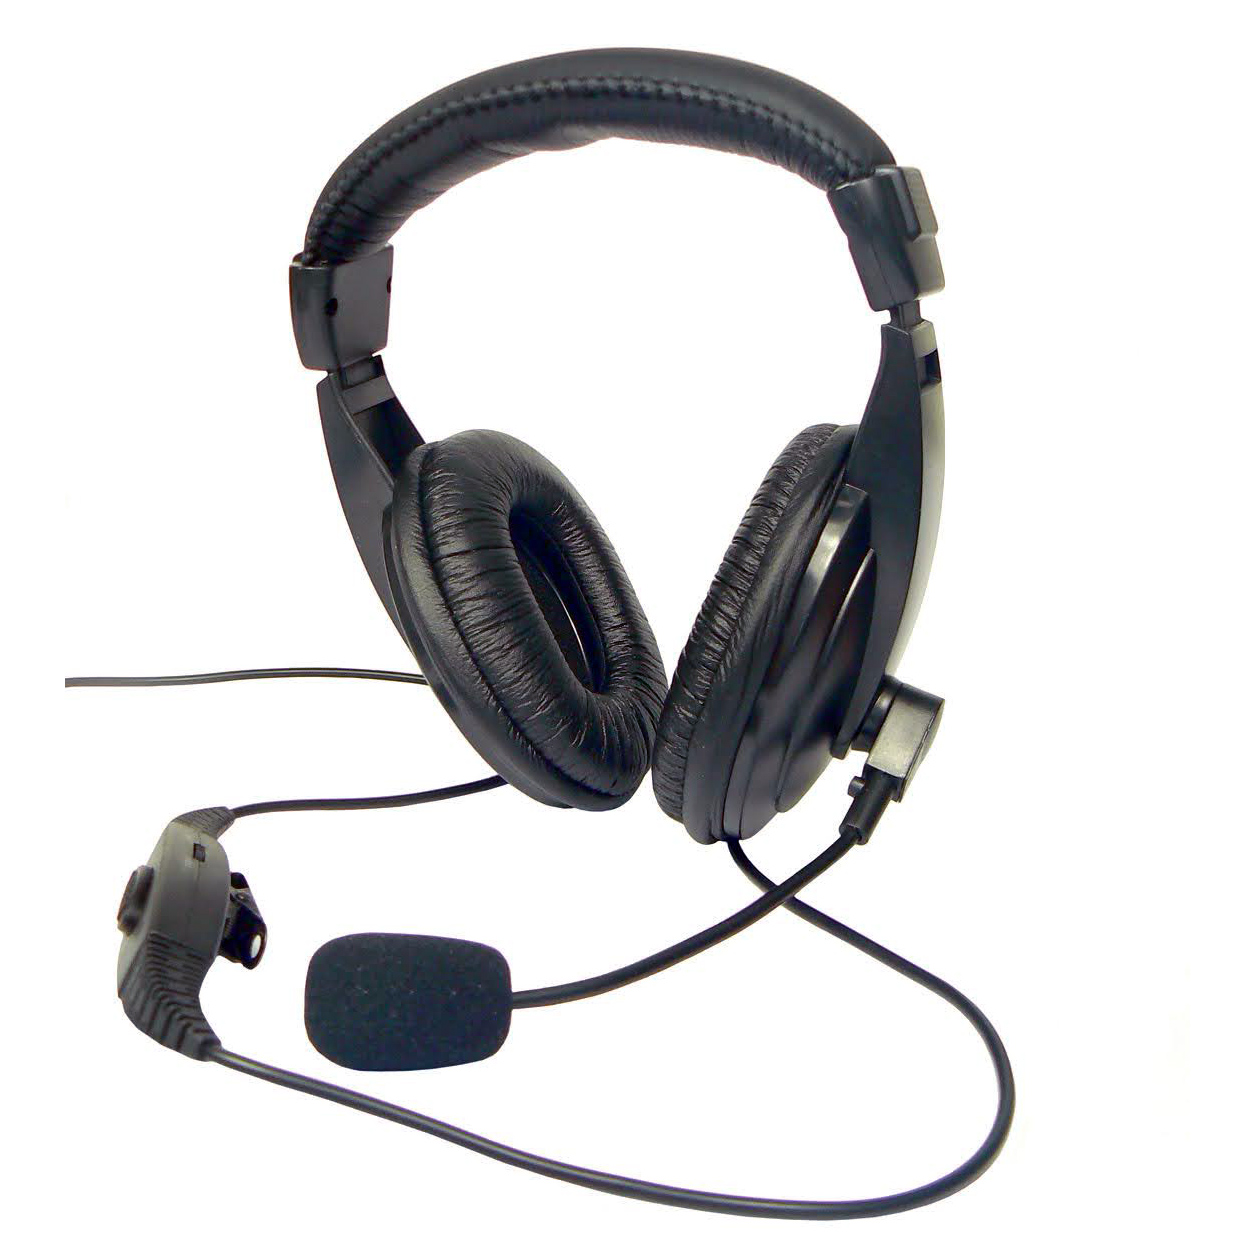 Full headphone and microphone